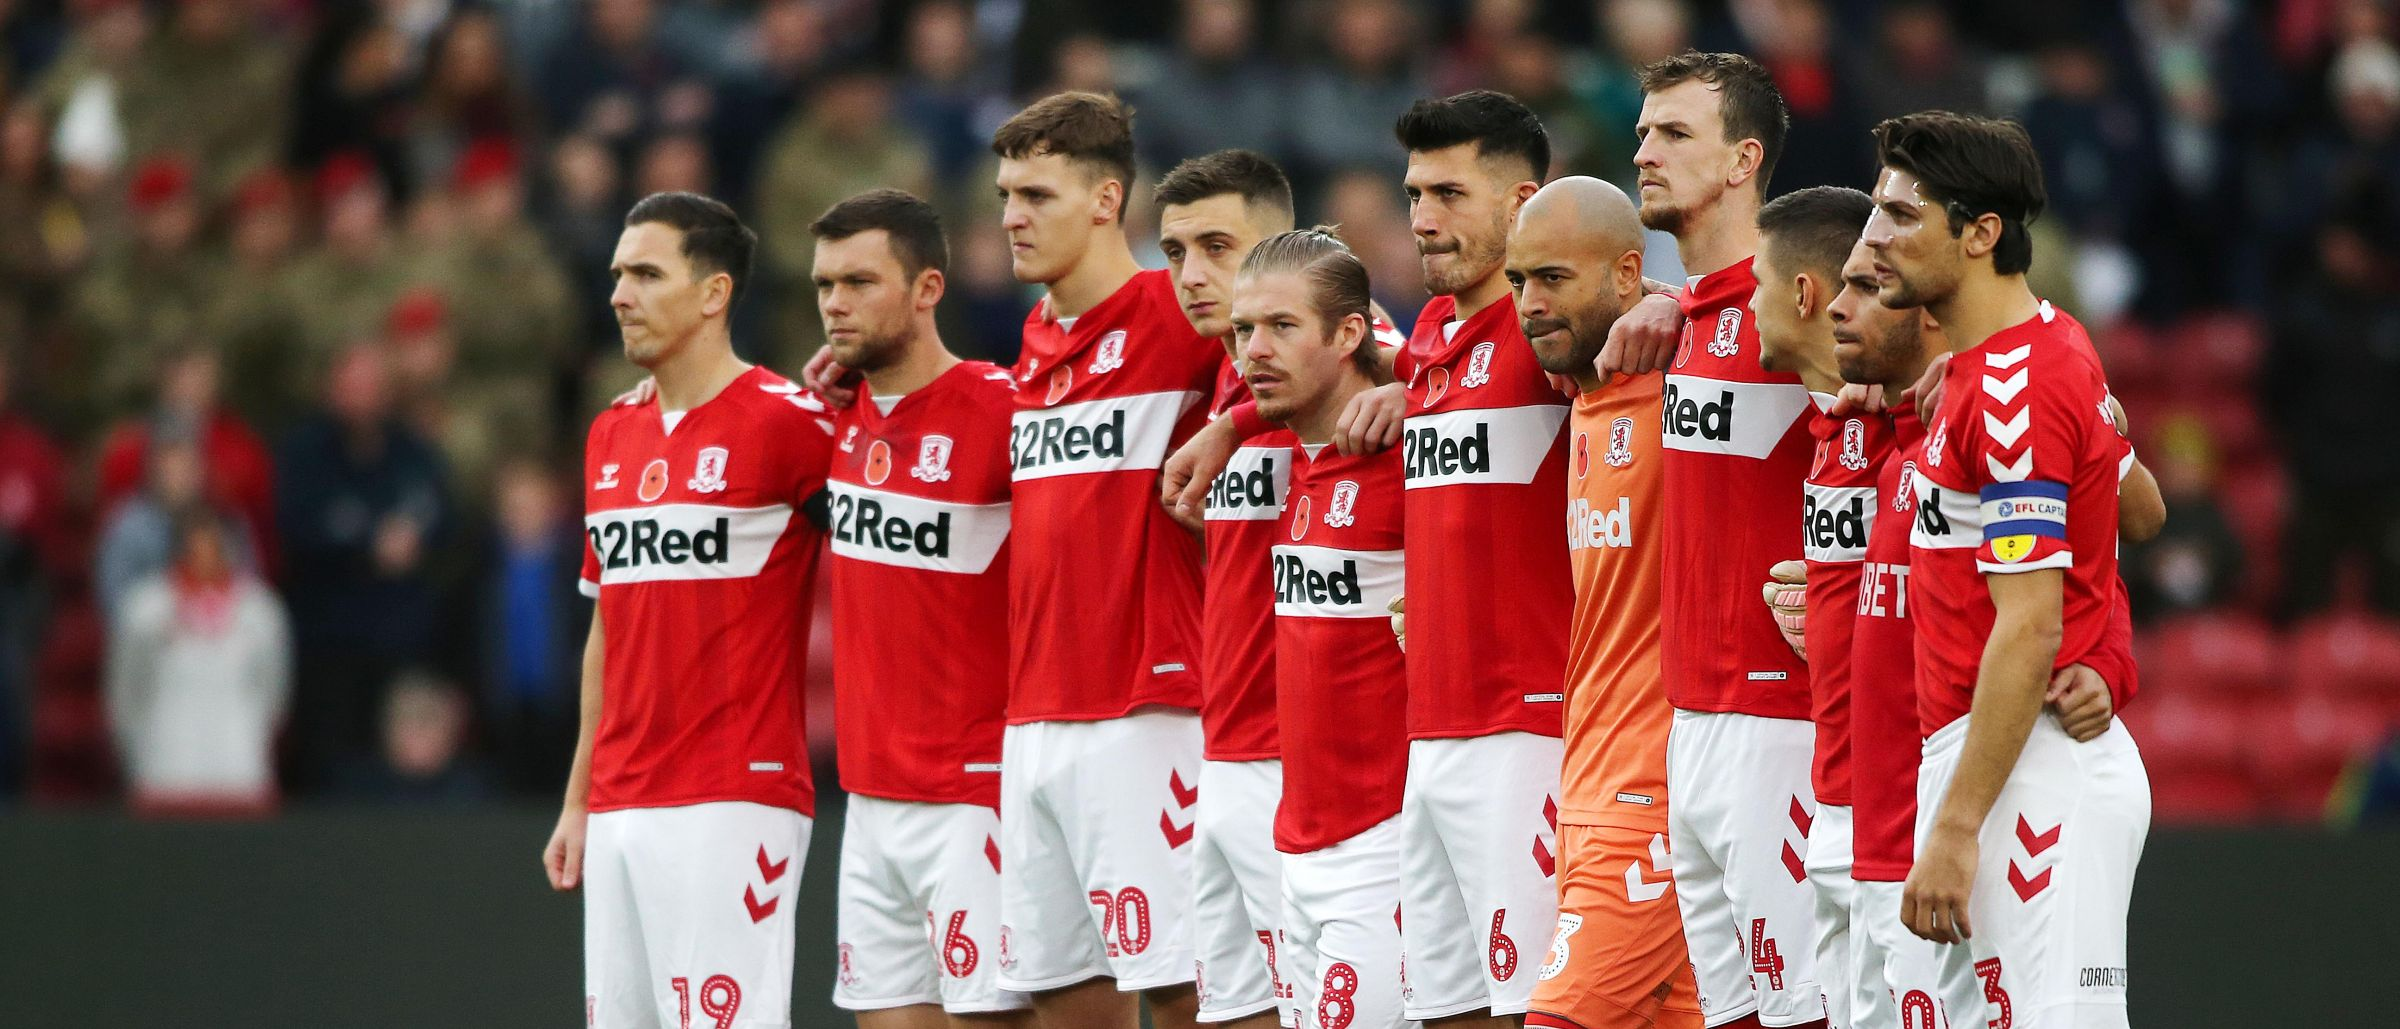 Boro players pay their respects